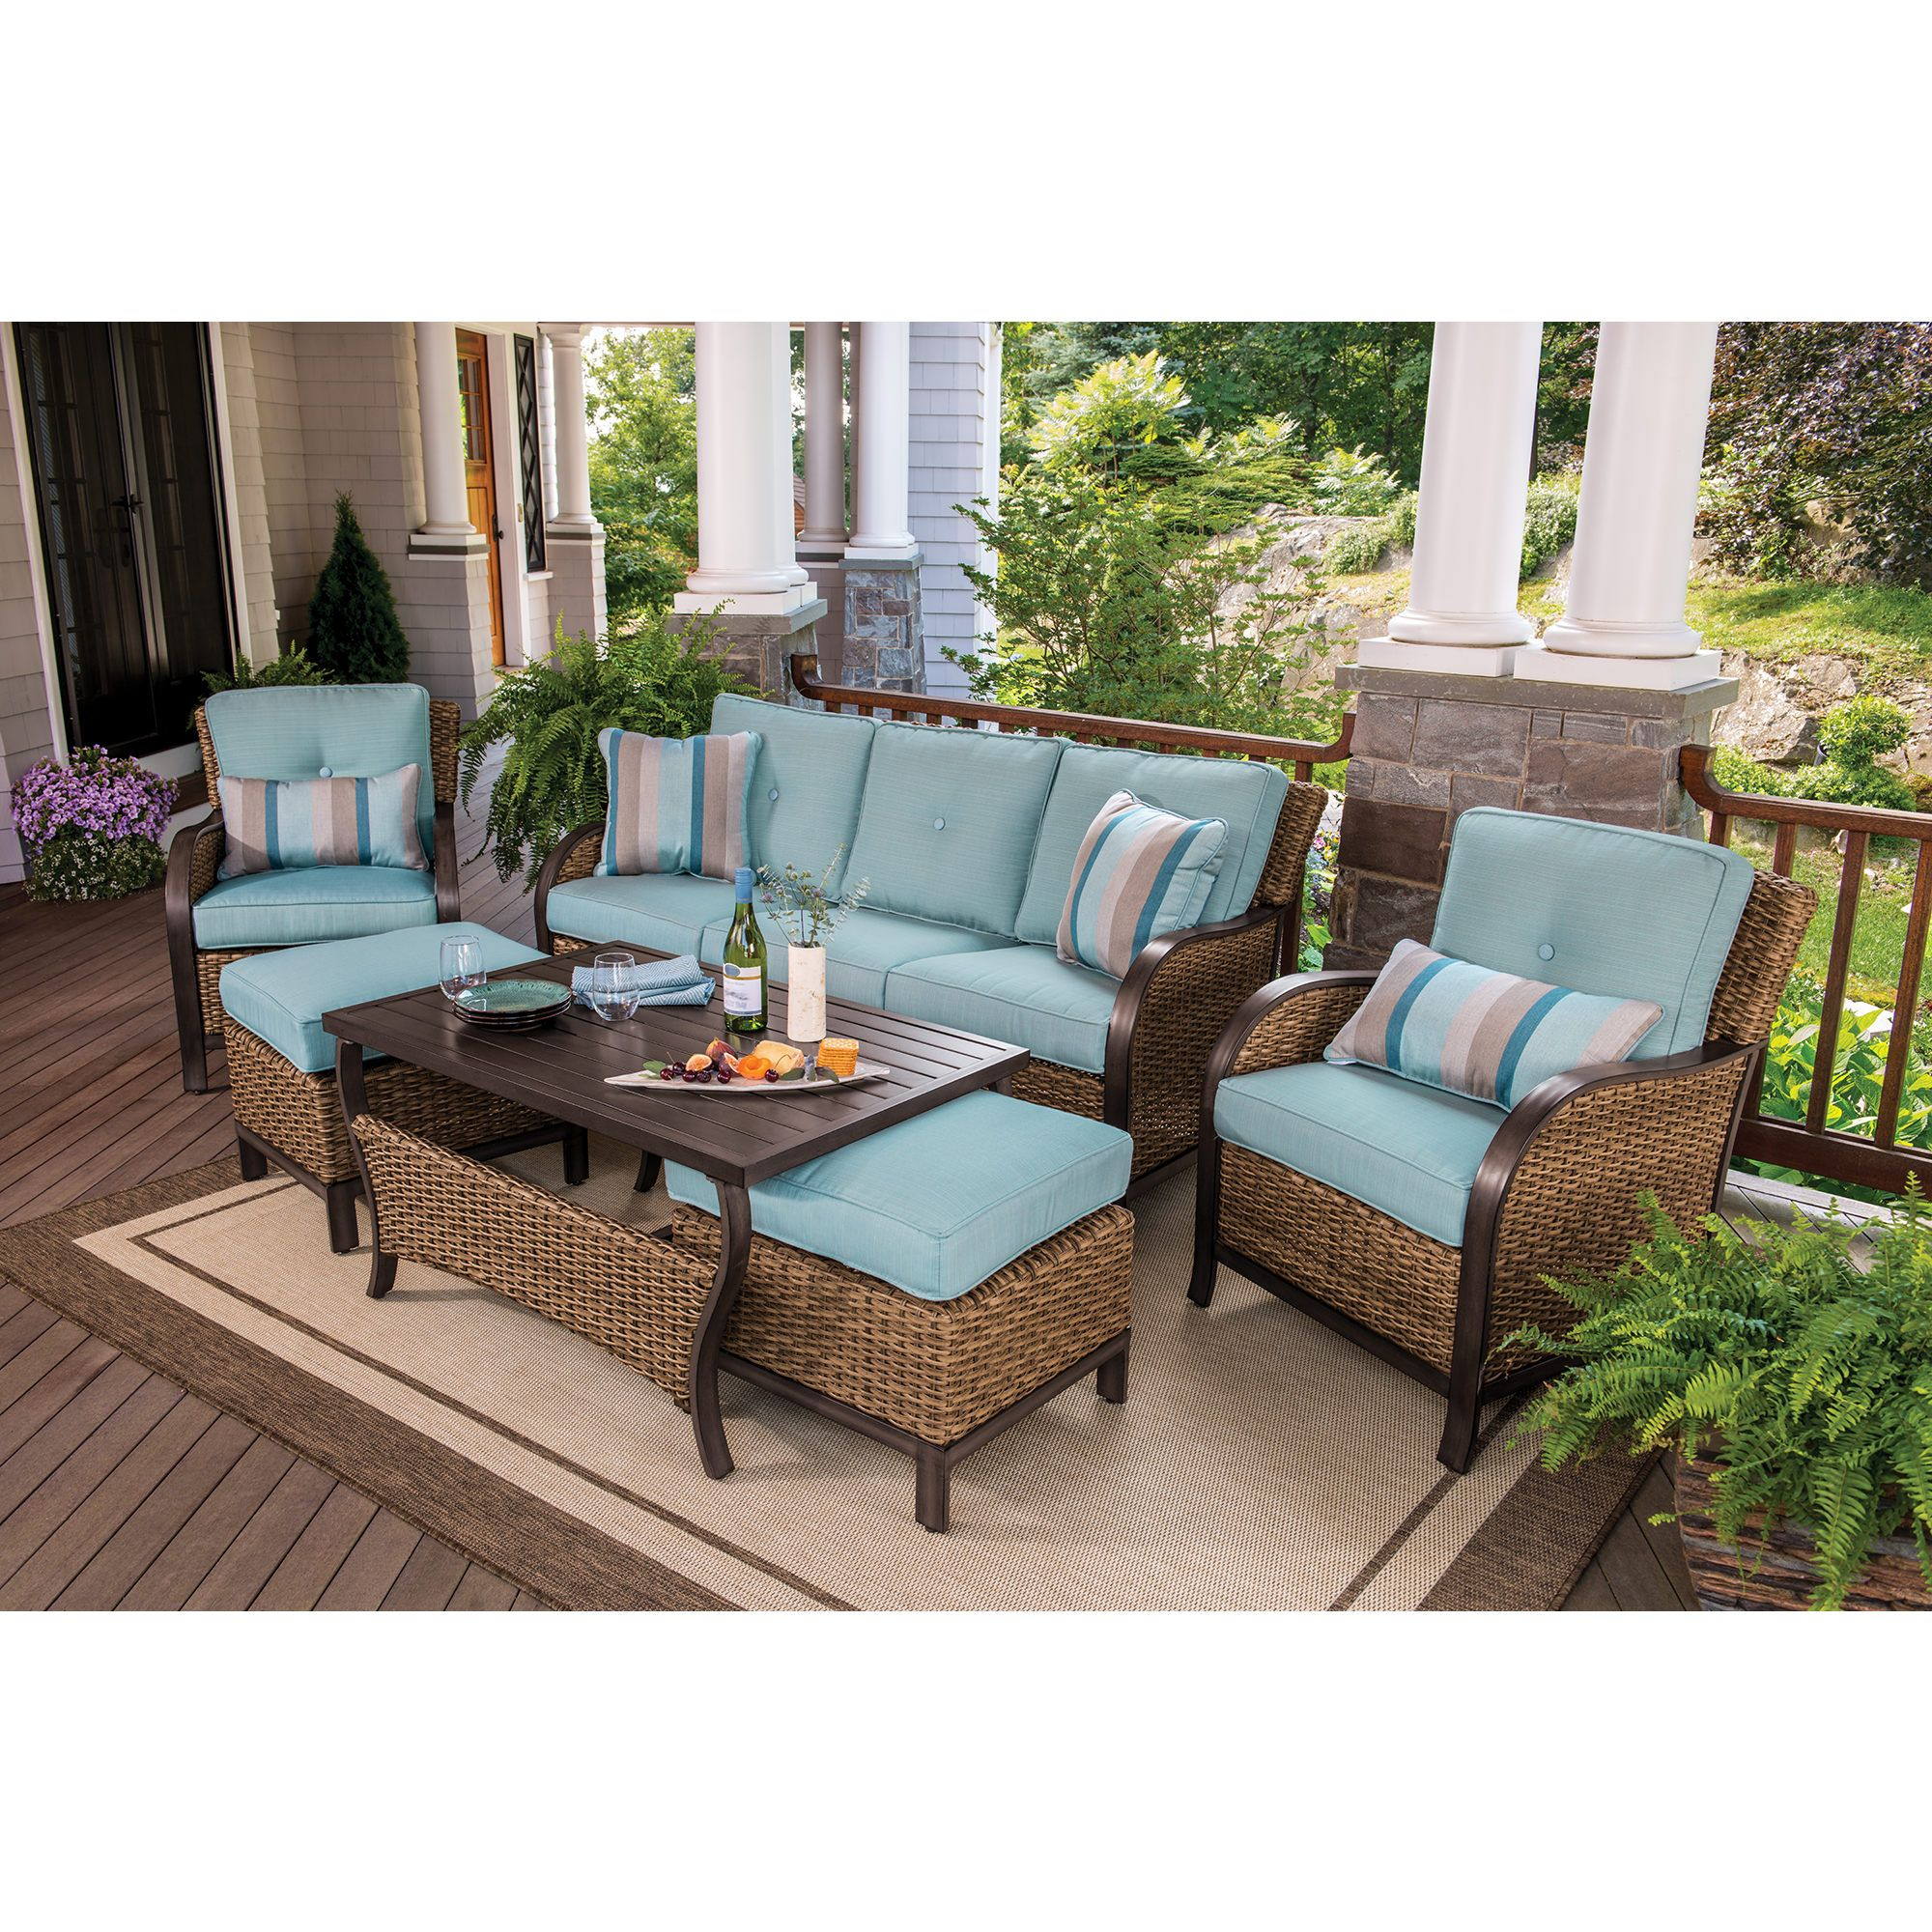 30 Luxury Bj Patio Furniture